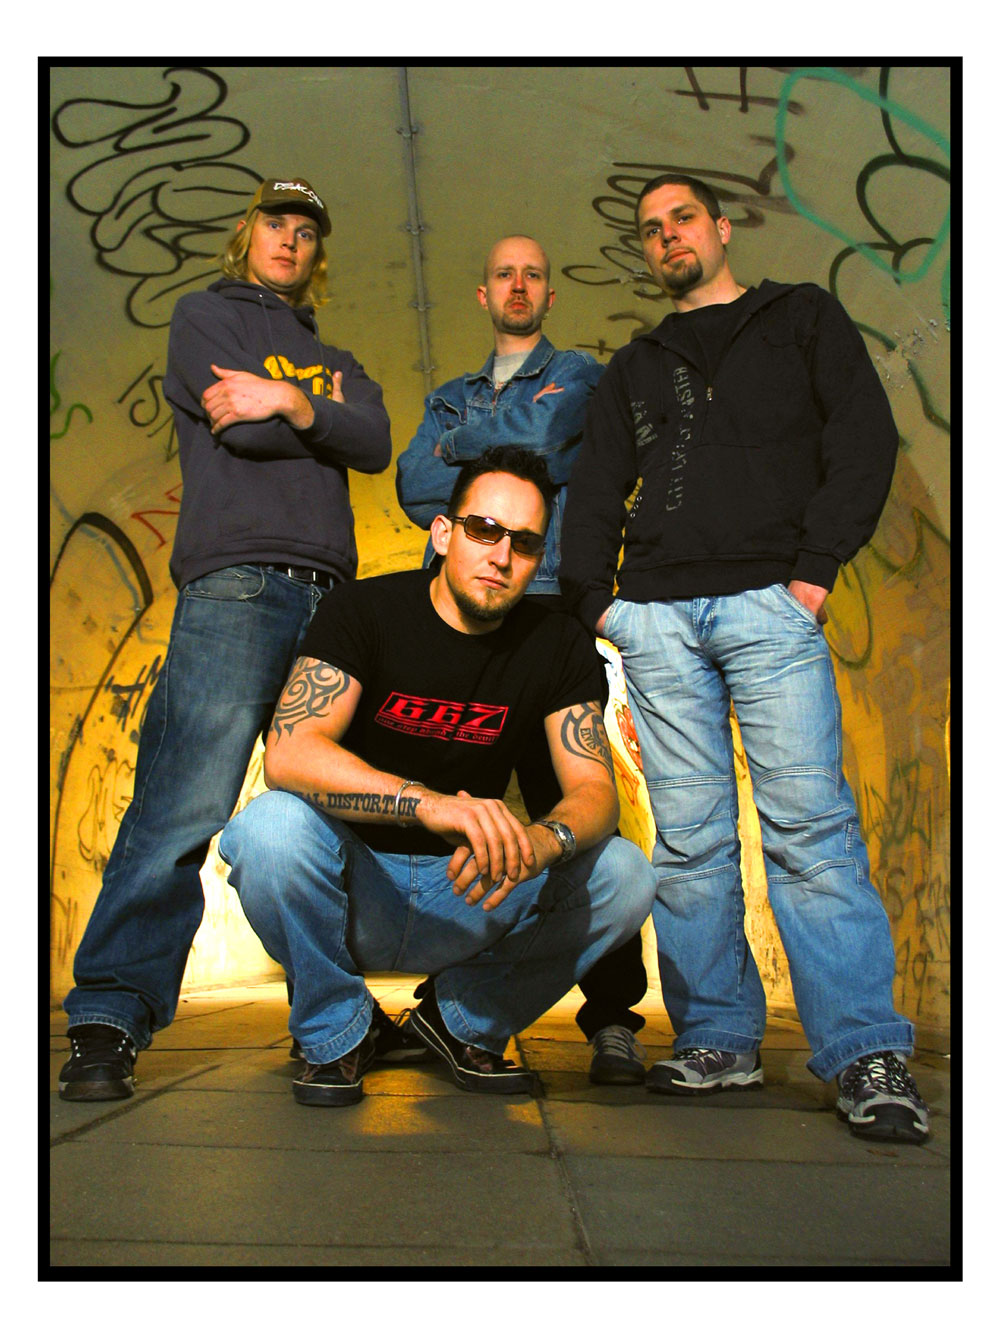 Volbeat Announce U S Tour The Gauntlet Heavy Metal News